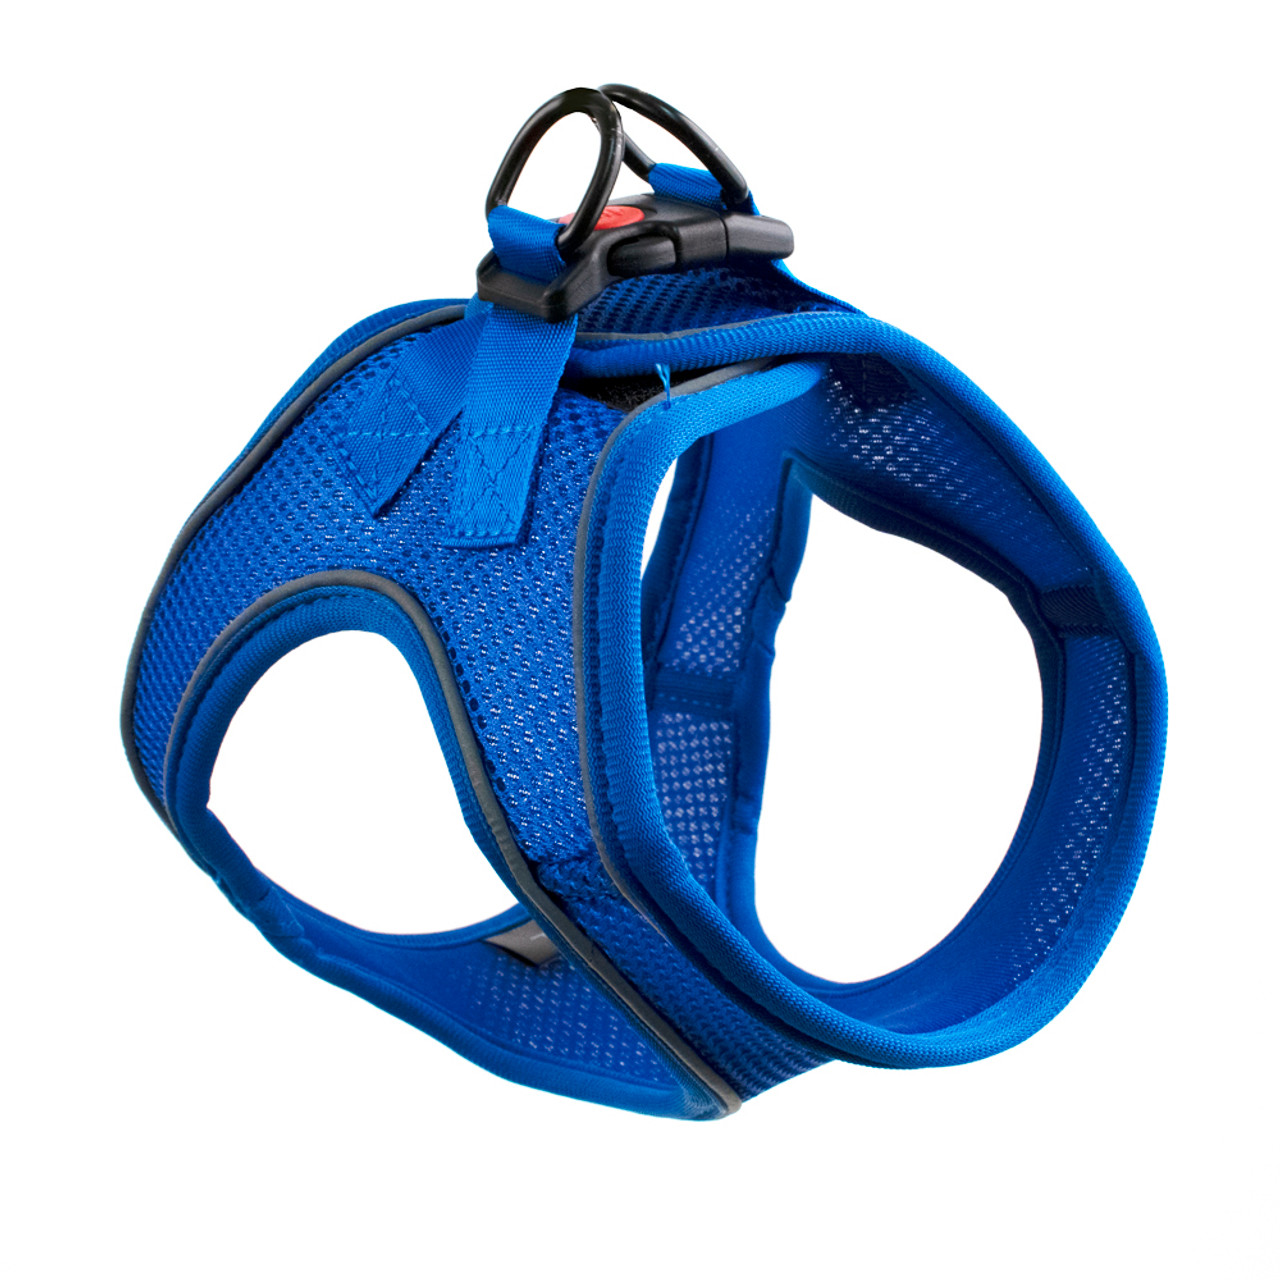 BizzyBoi Mesh Reflective Dog Harness